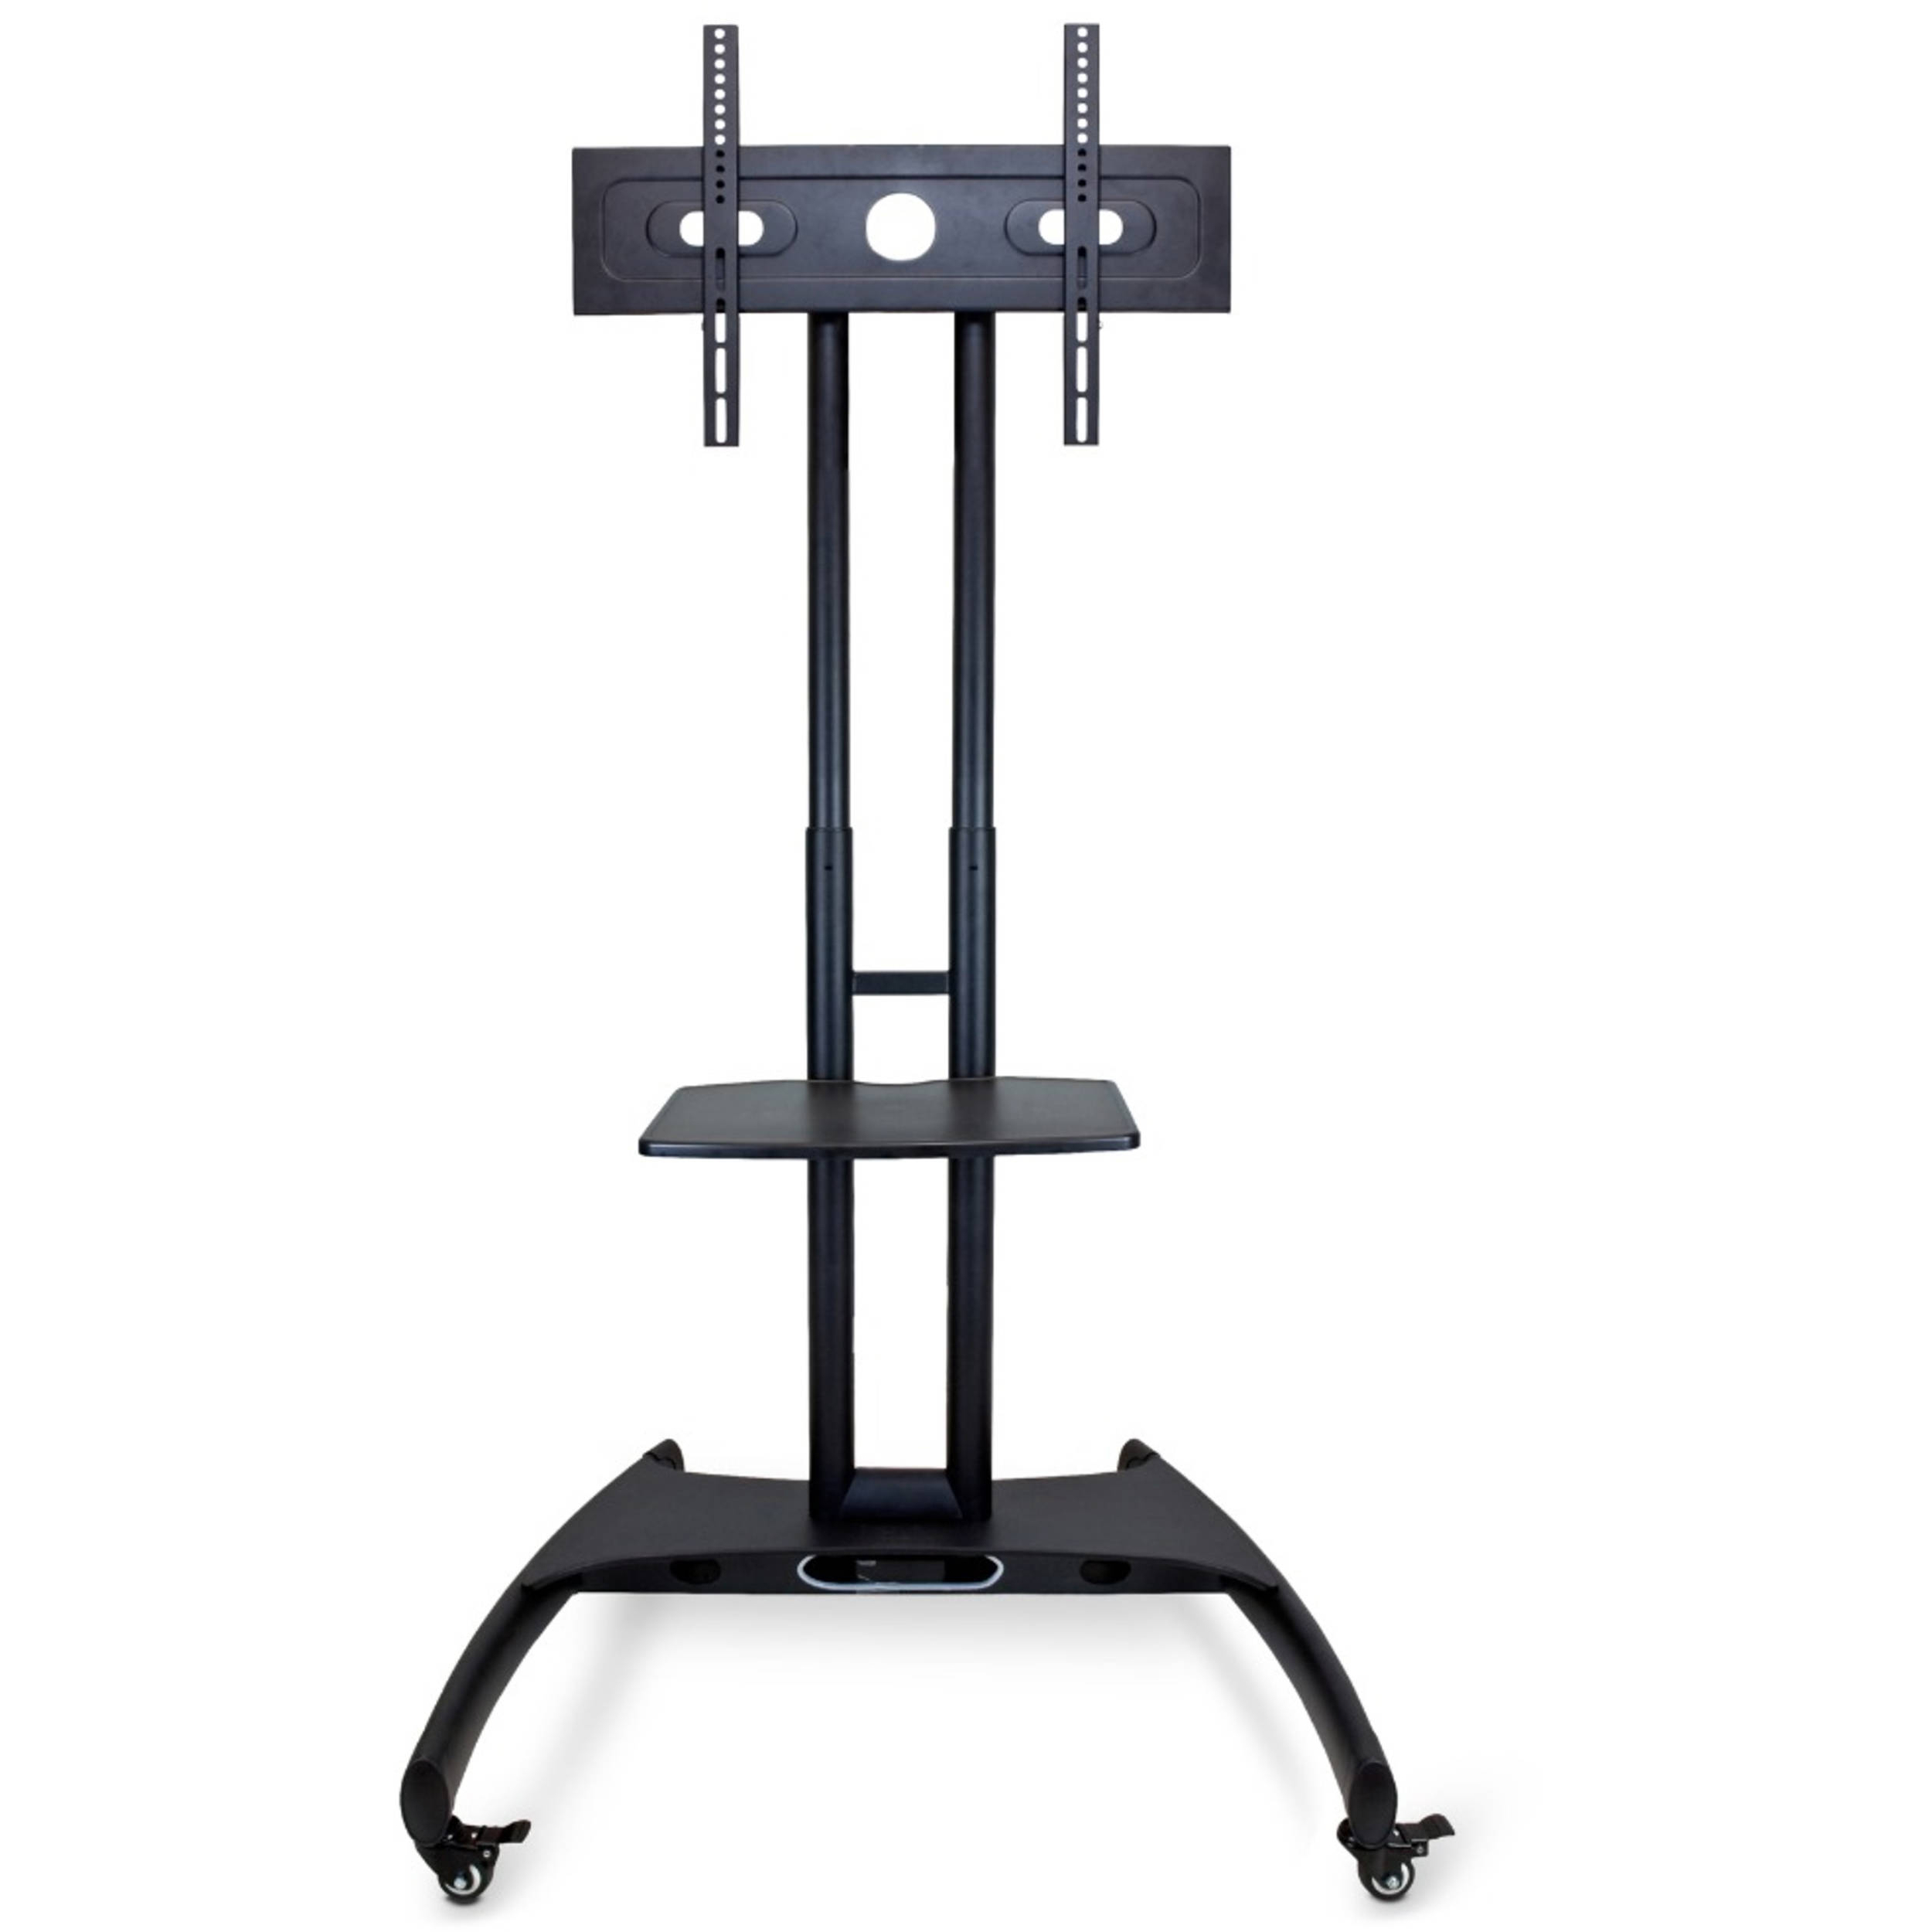 Best And Newest Swivel Floor Tv Stands Height Adjustable Within Luxor Fp2500 Adjustable Height Lcd Tv Stand Fp2500 B&h Photo (View 8 of 10)